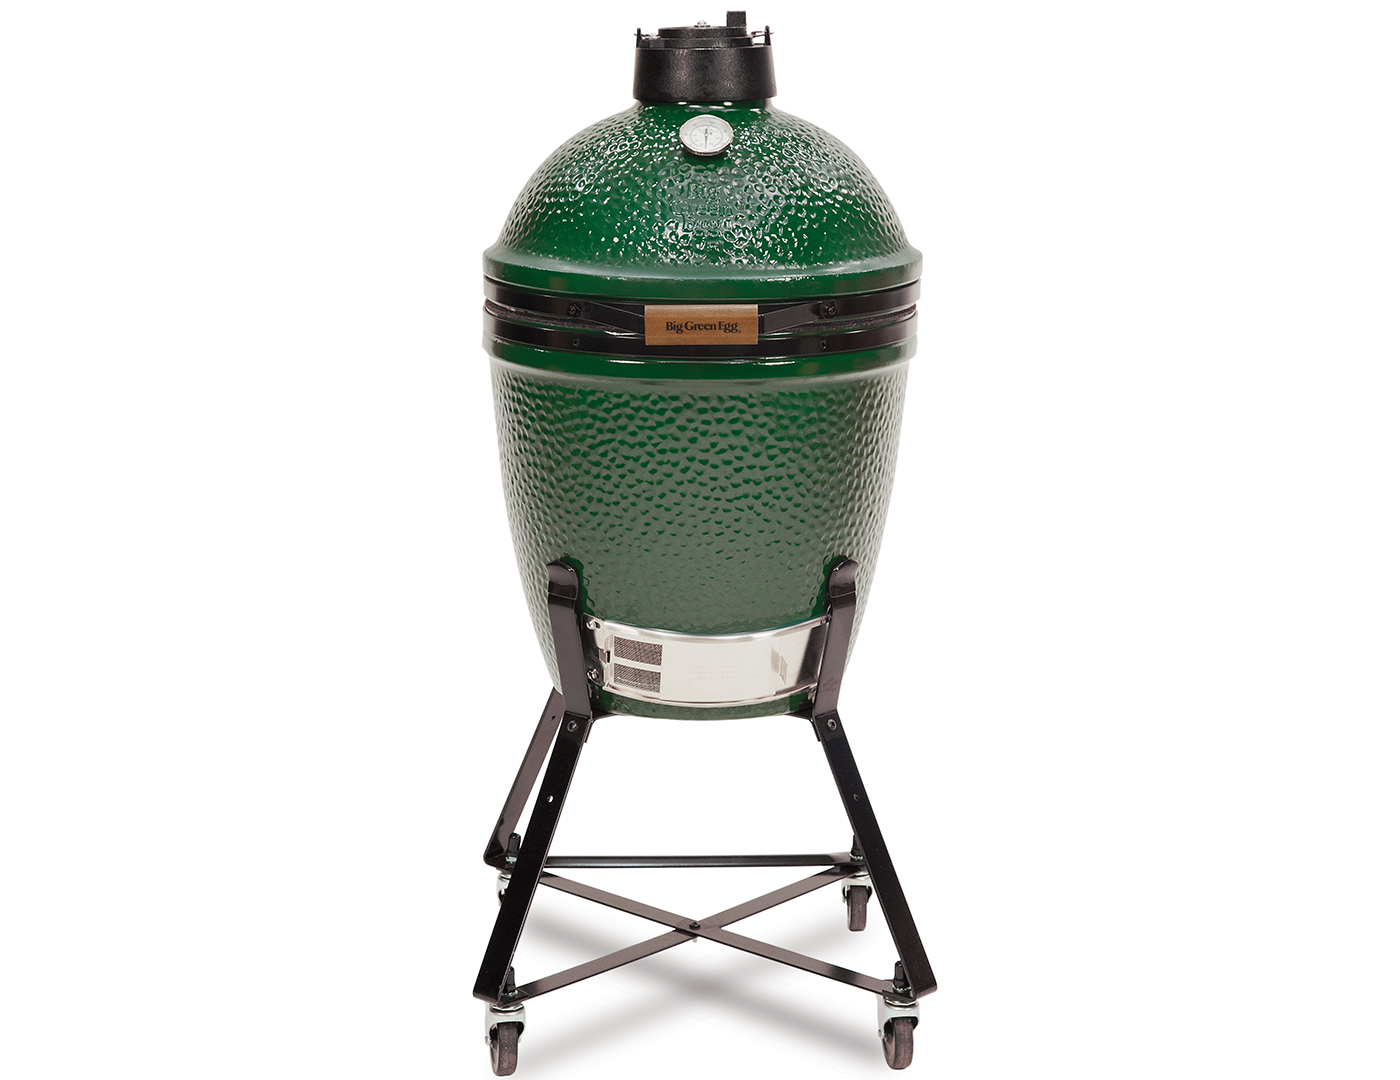 Big Green Egg Nest with Casters for Medium Egg